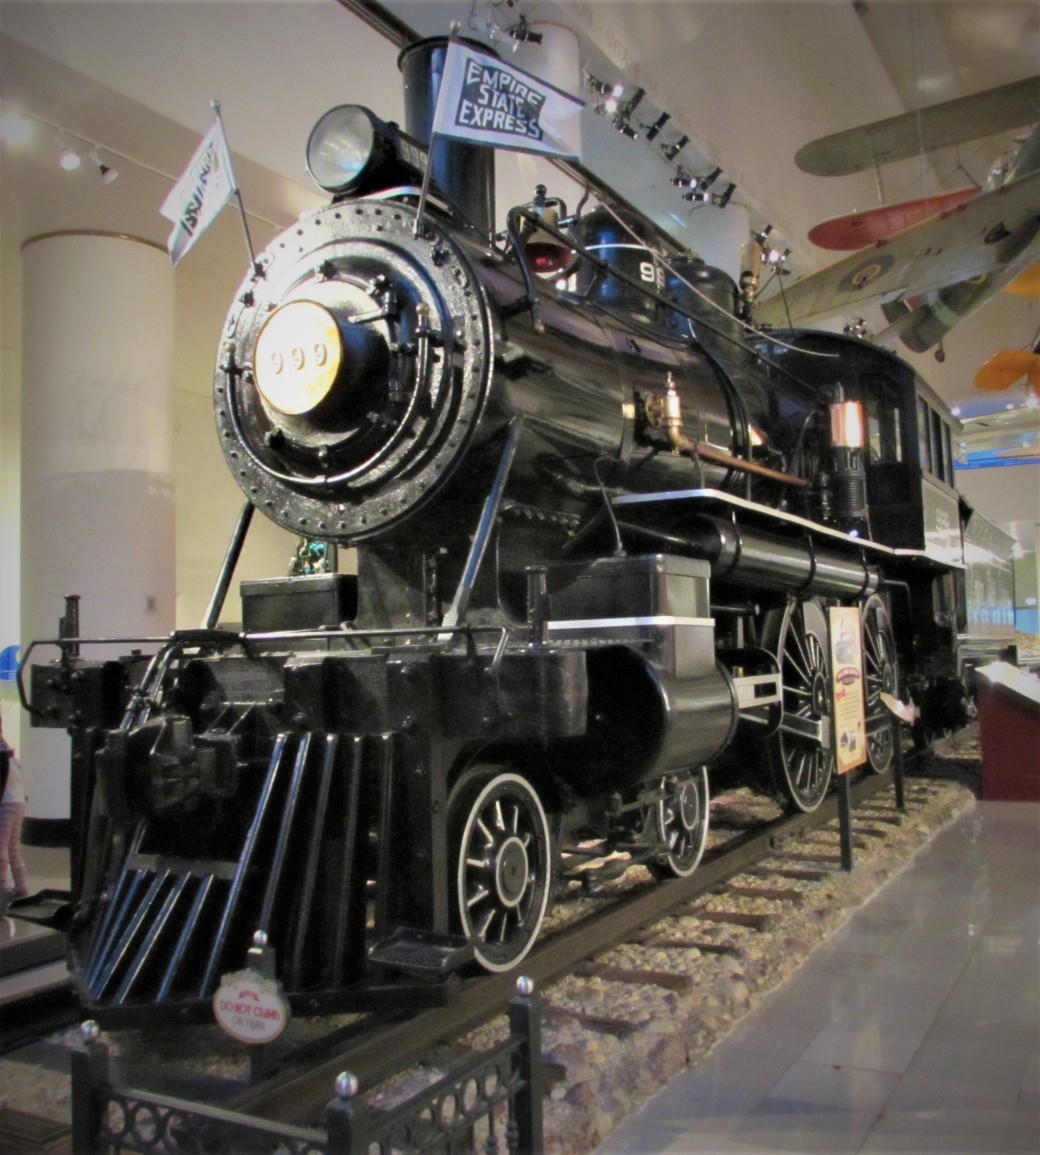 Empire State Express Number 999 Museum of S&I Chicago Illinois